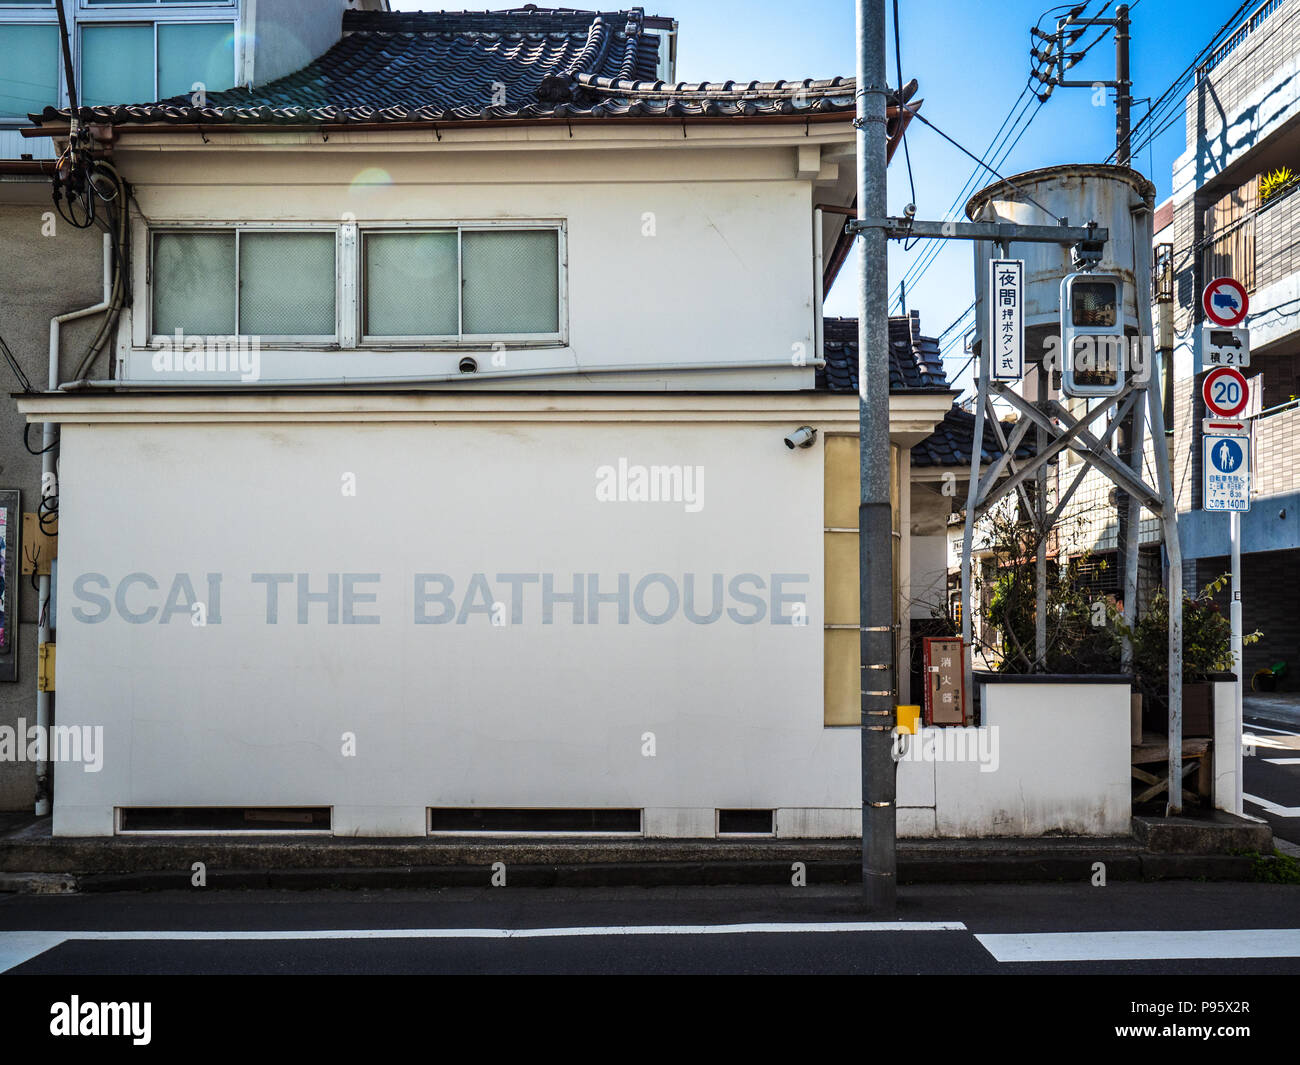 SCAI the Bathhouse, Art Gallery opened 1993, in the historic Yanaka district of Tokyo. Remodelled from a traditional Japanese public bathhouse. - Stock Image